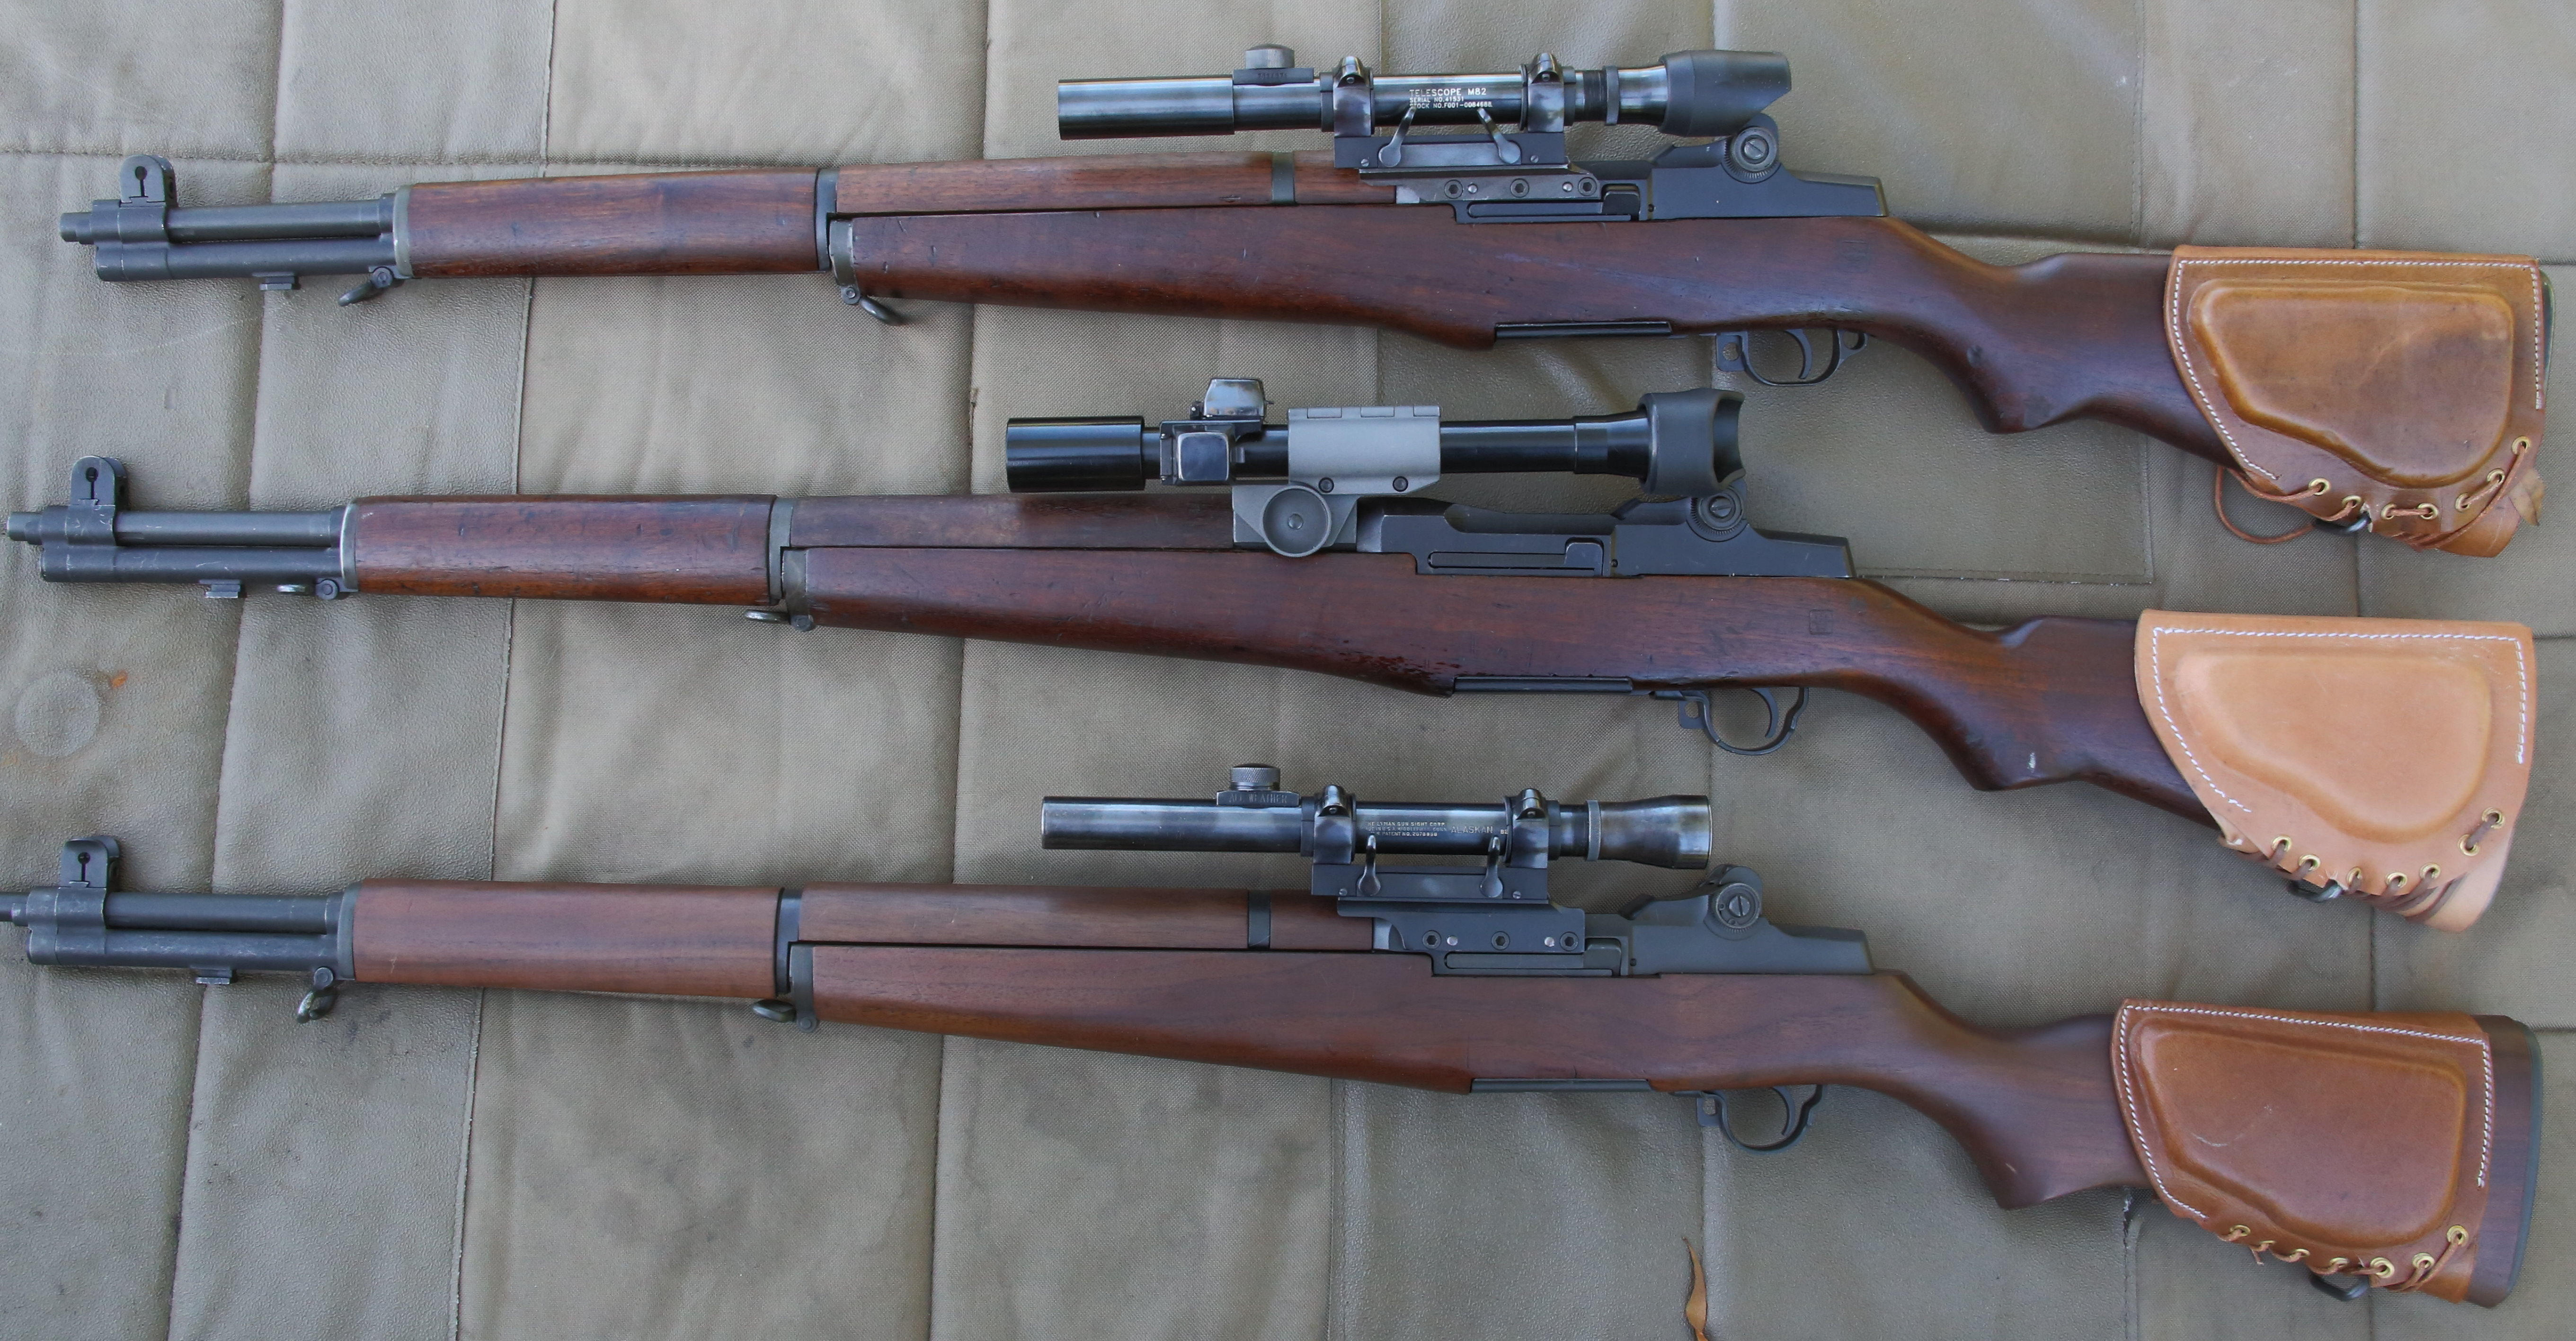 M1 Garand Pics, Weapons Collection